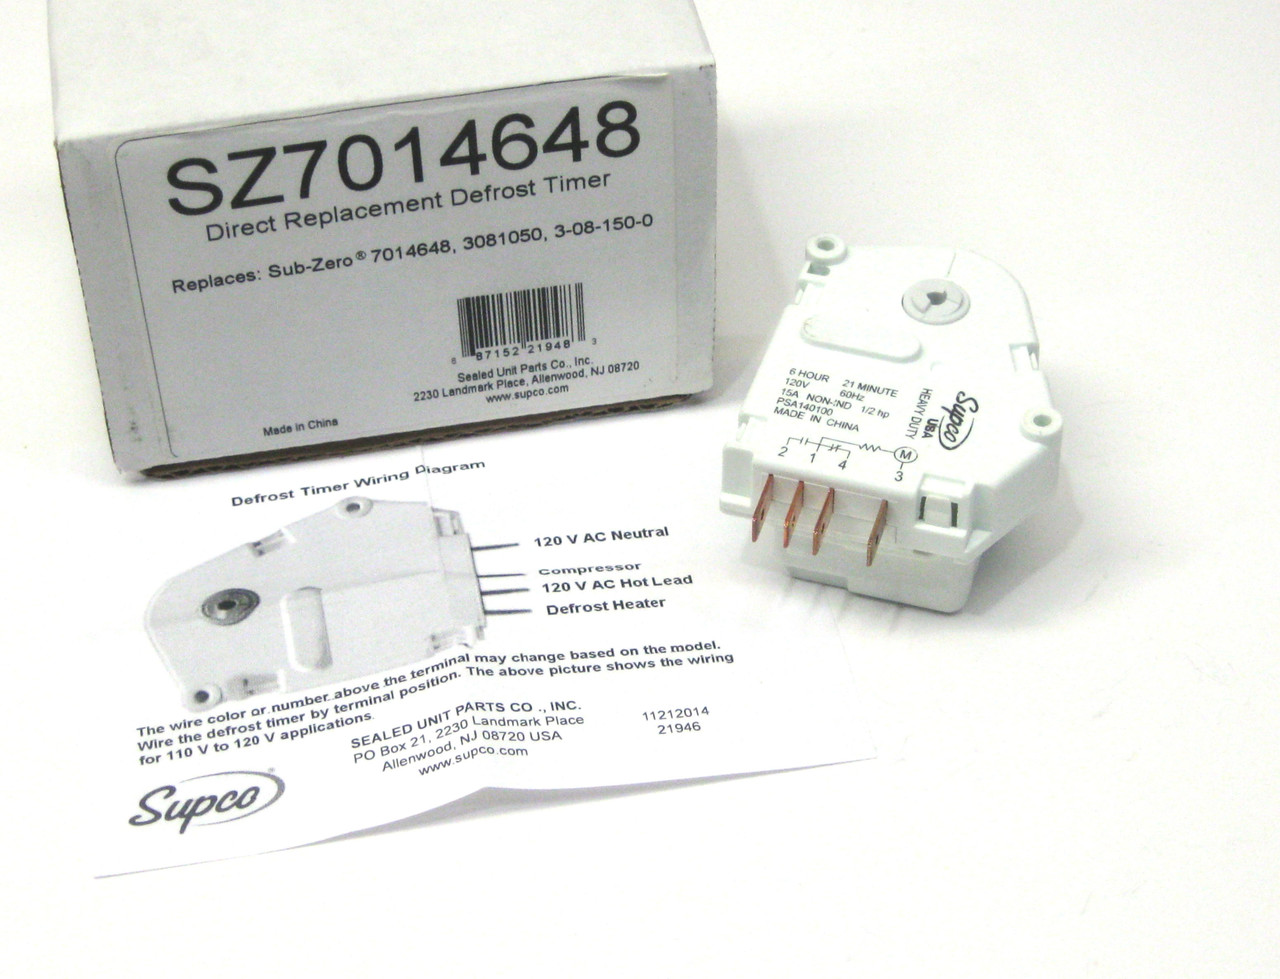 Supco Refrigerator Defrost Timer Mccombs Supply Co Sz7014648